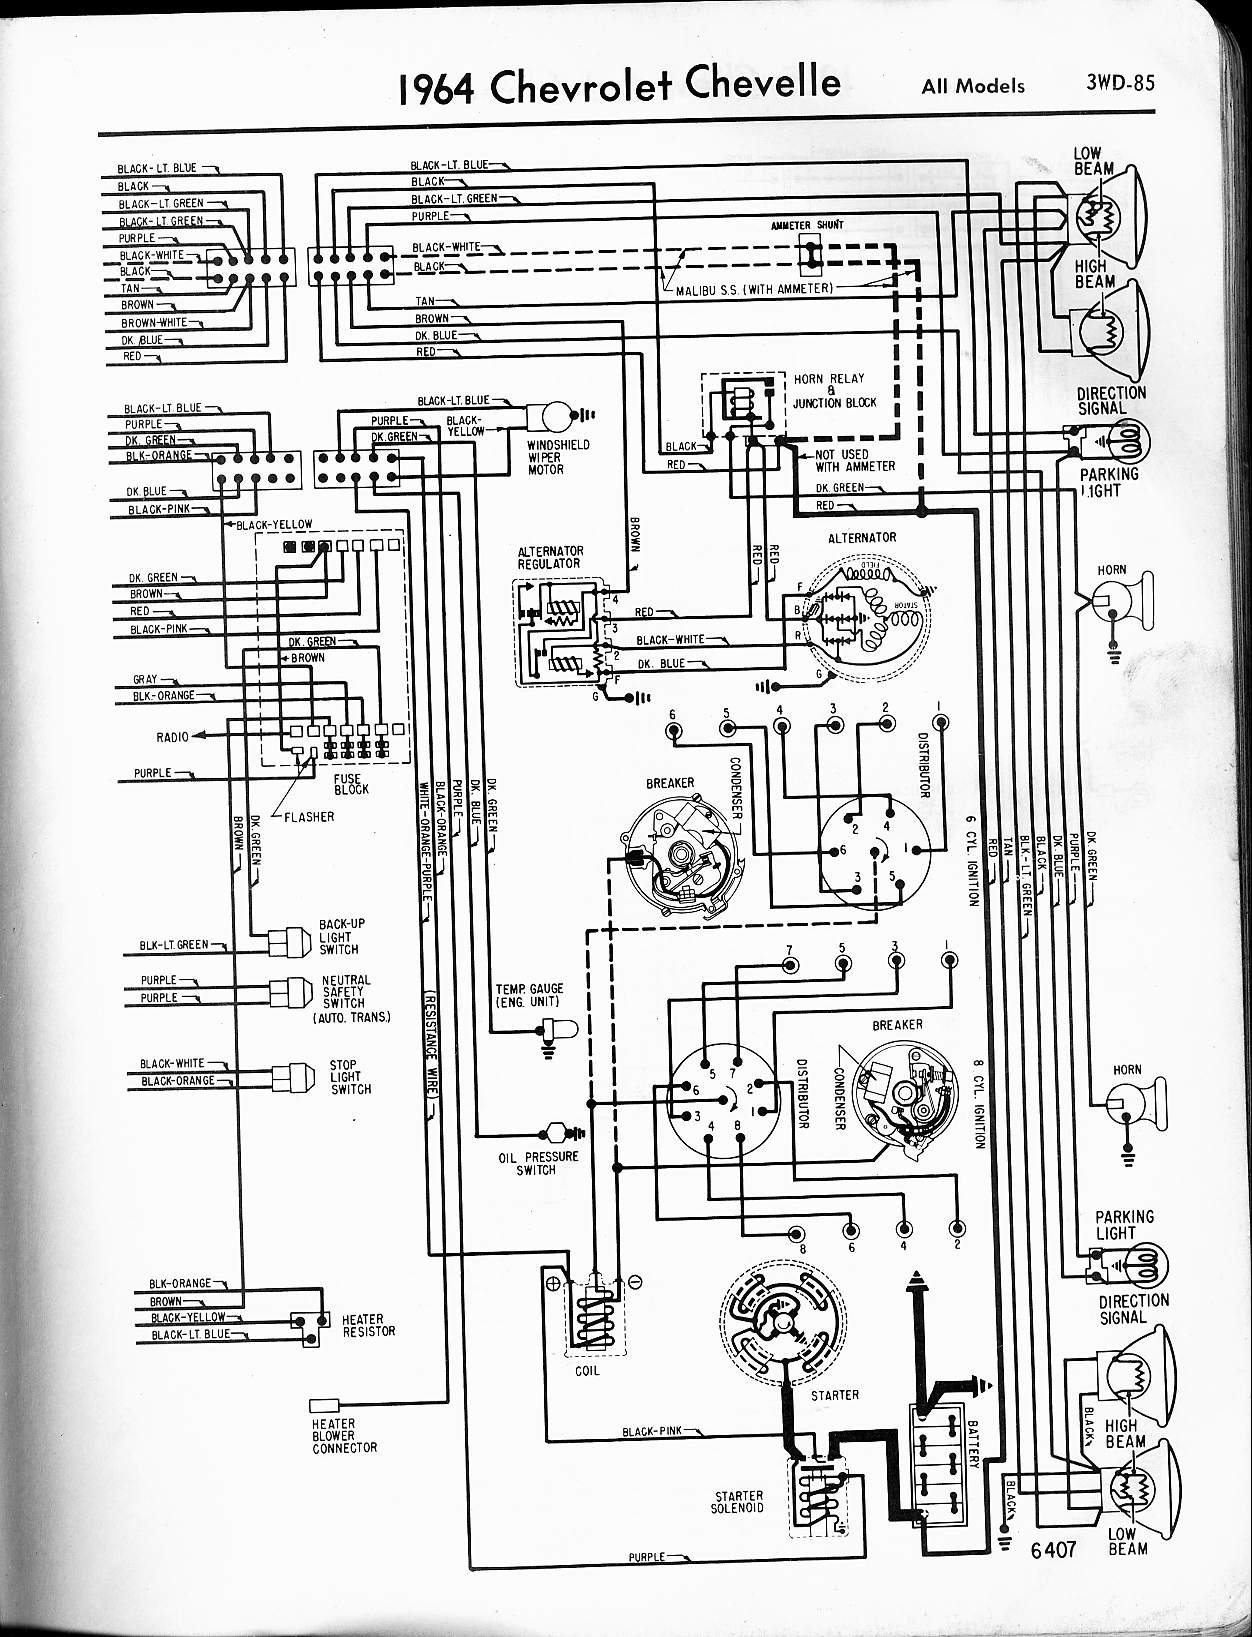 65 chevelle alternator wiring diagram wiring diagram for light rh prestonfarmmotors co GM 1 -Wire Alternator Wiring Diagram Simple Alternator Wiring Diagram